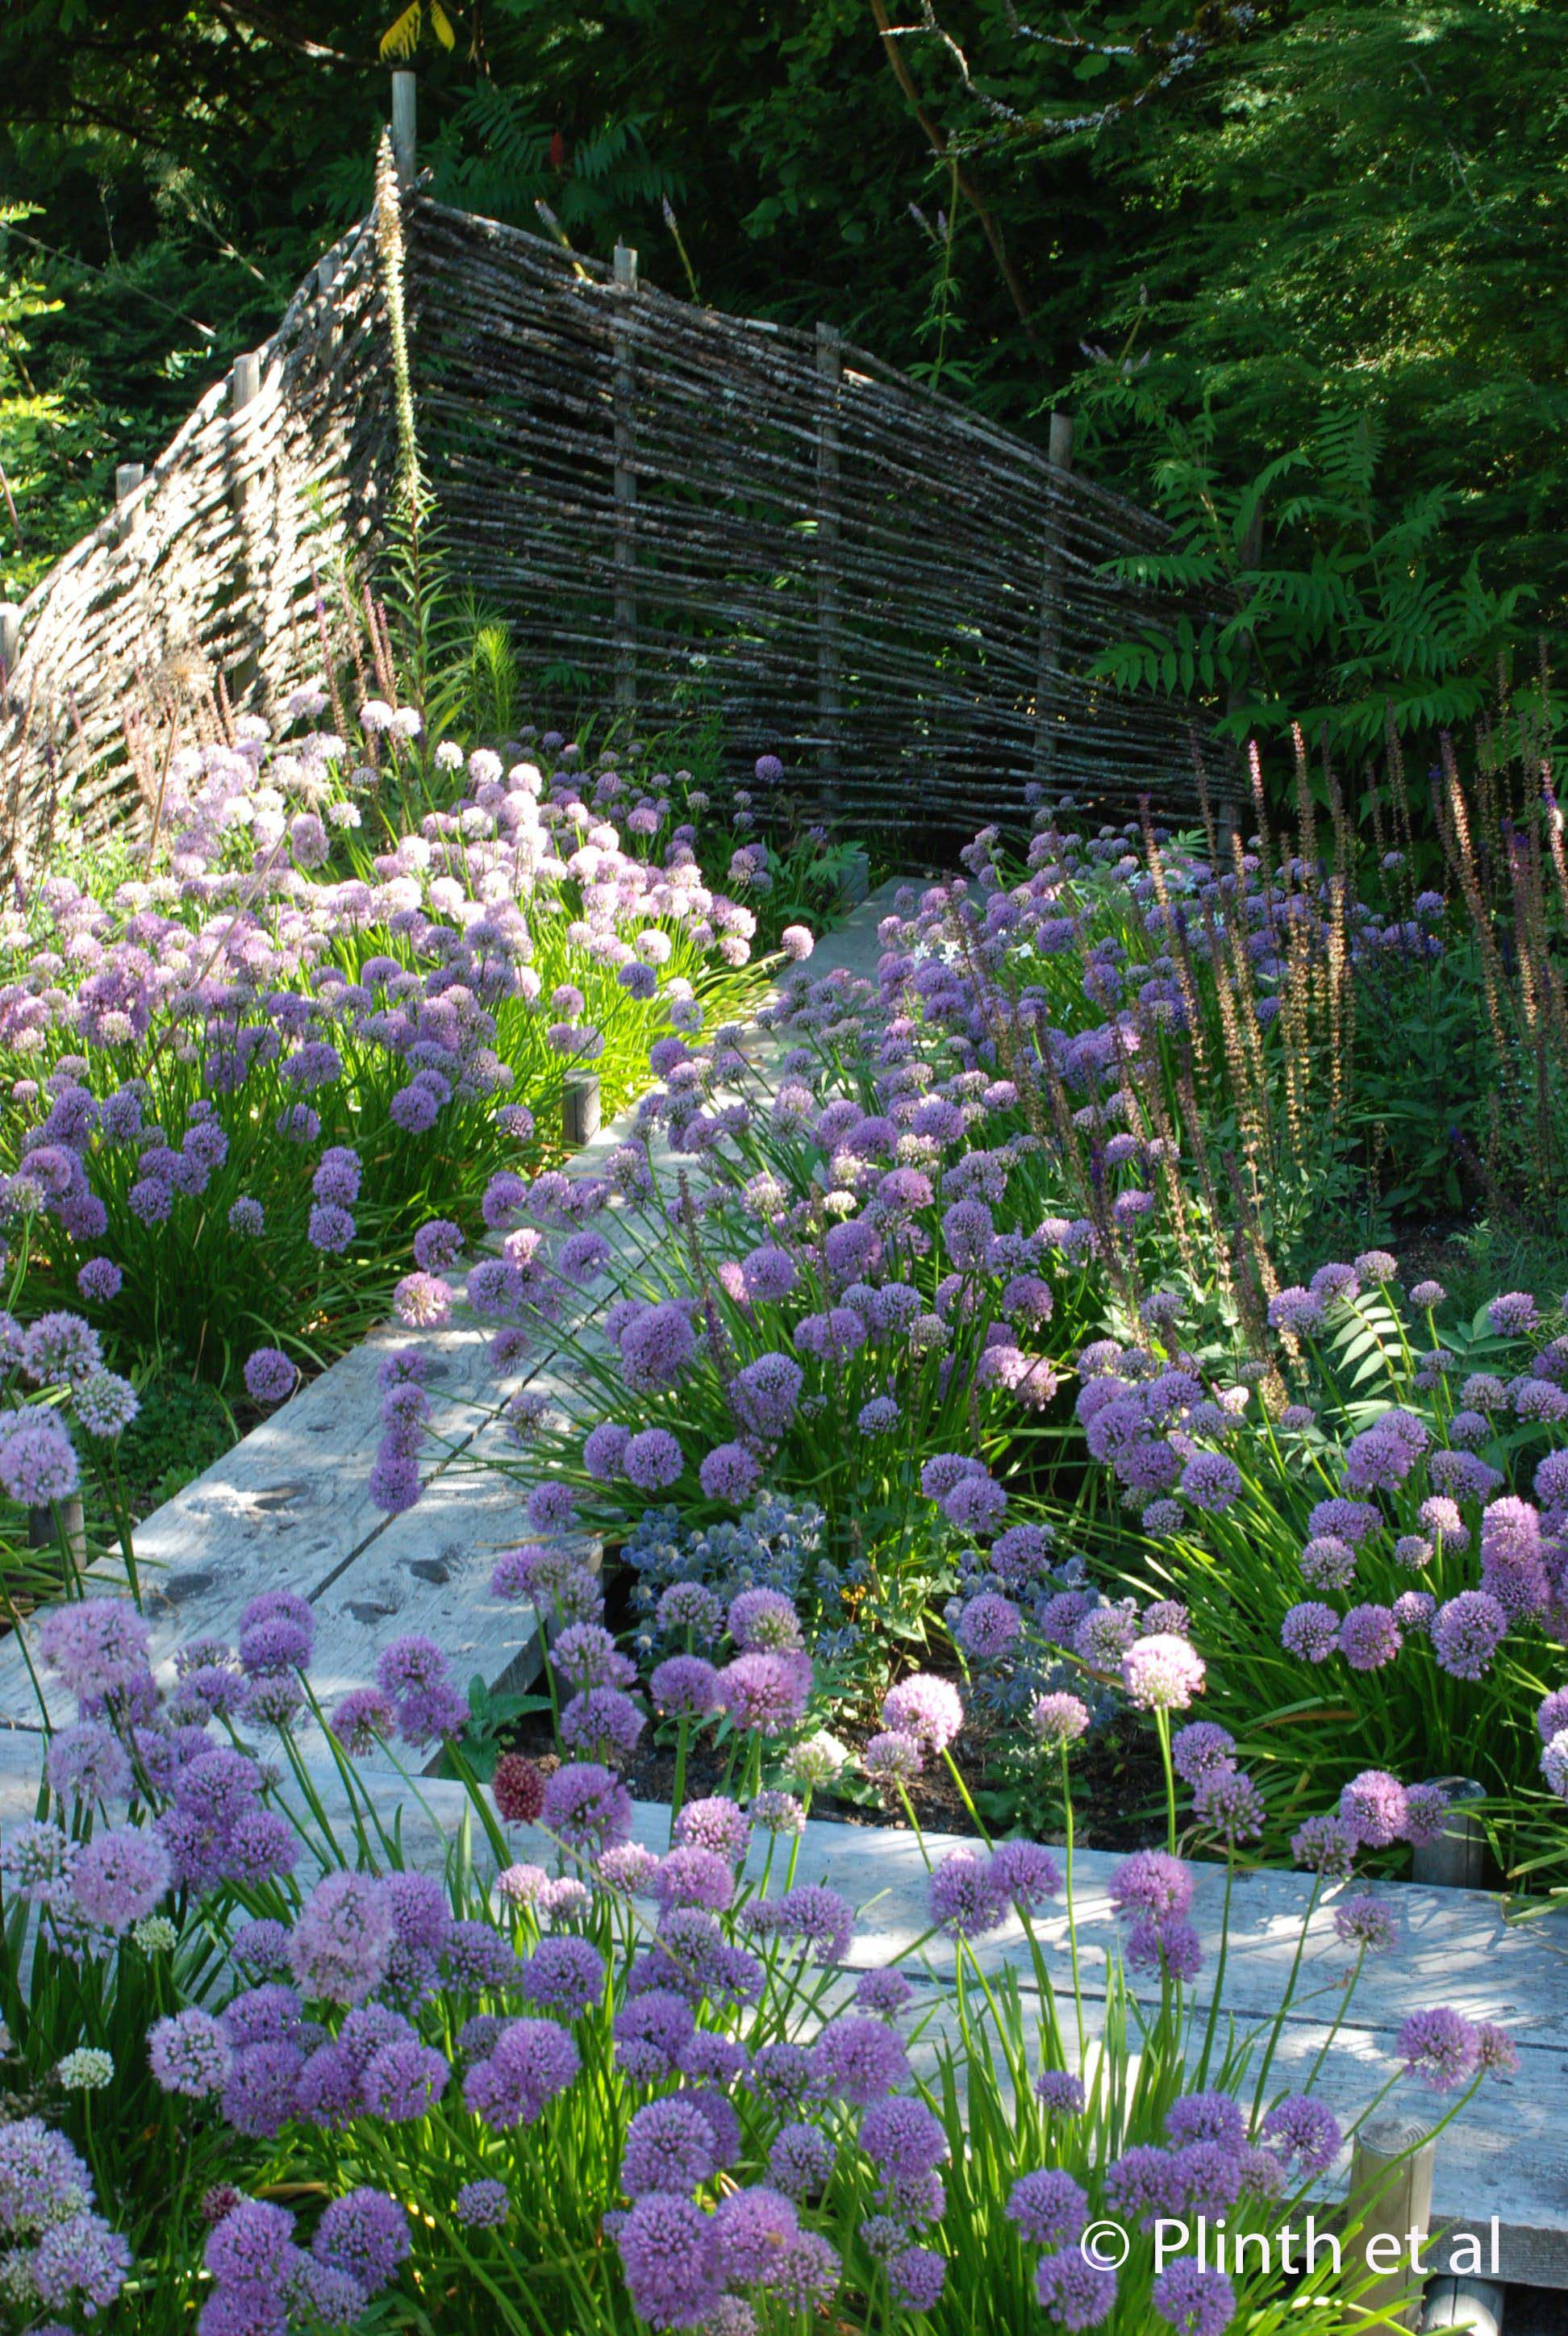 Alliums (Alllium senescens and A. 'Summer Beauty') , spill along the zig-zag bridge, a feature likely inspired by Chinese and Japanese gardens.